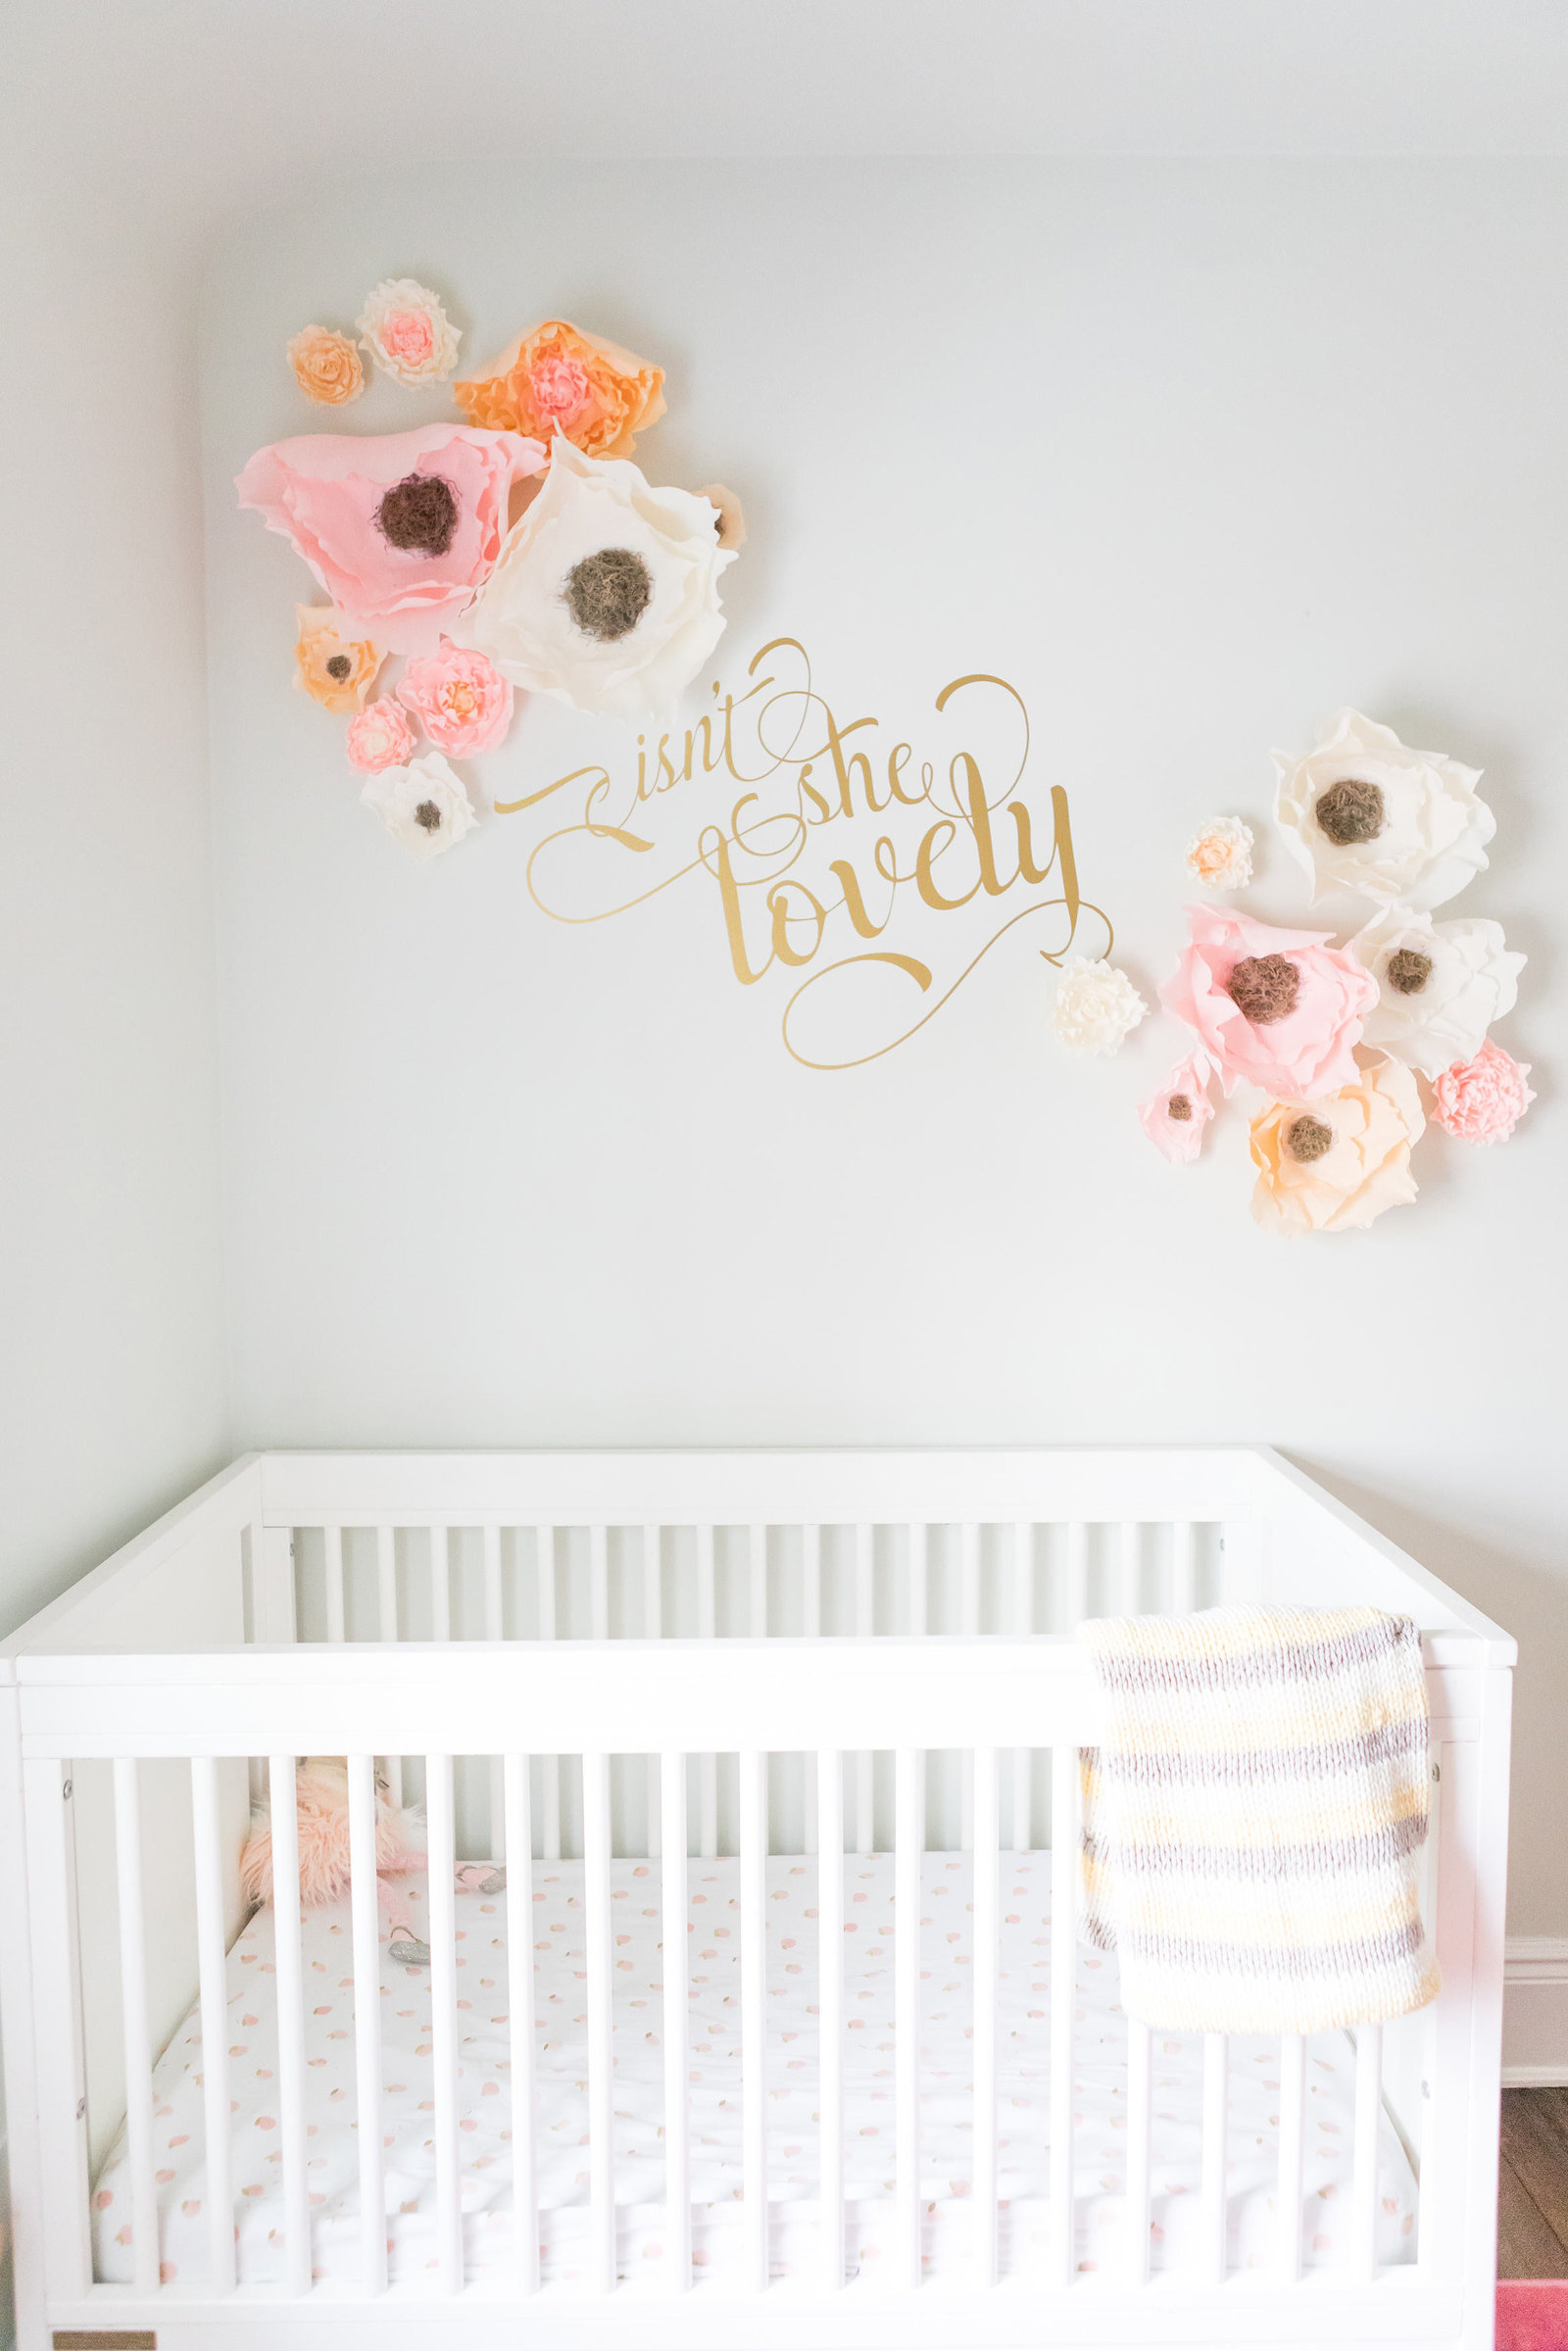 A crib with 3D paper flowers and gold quote.